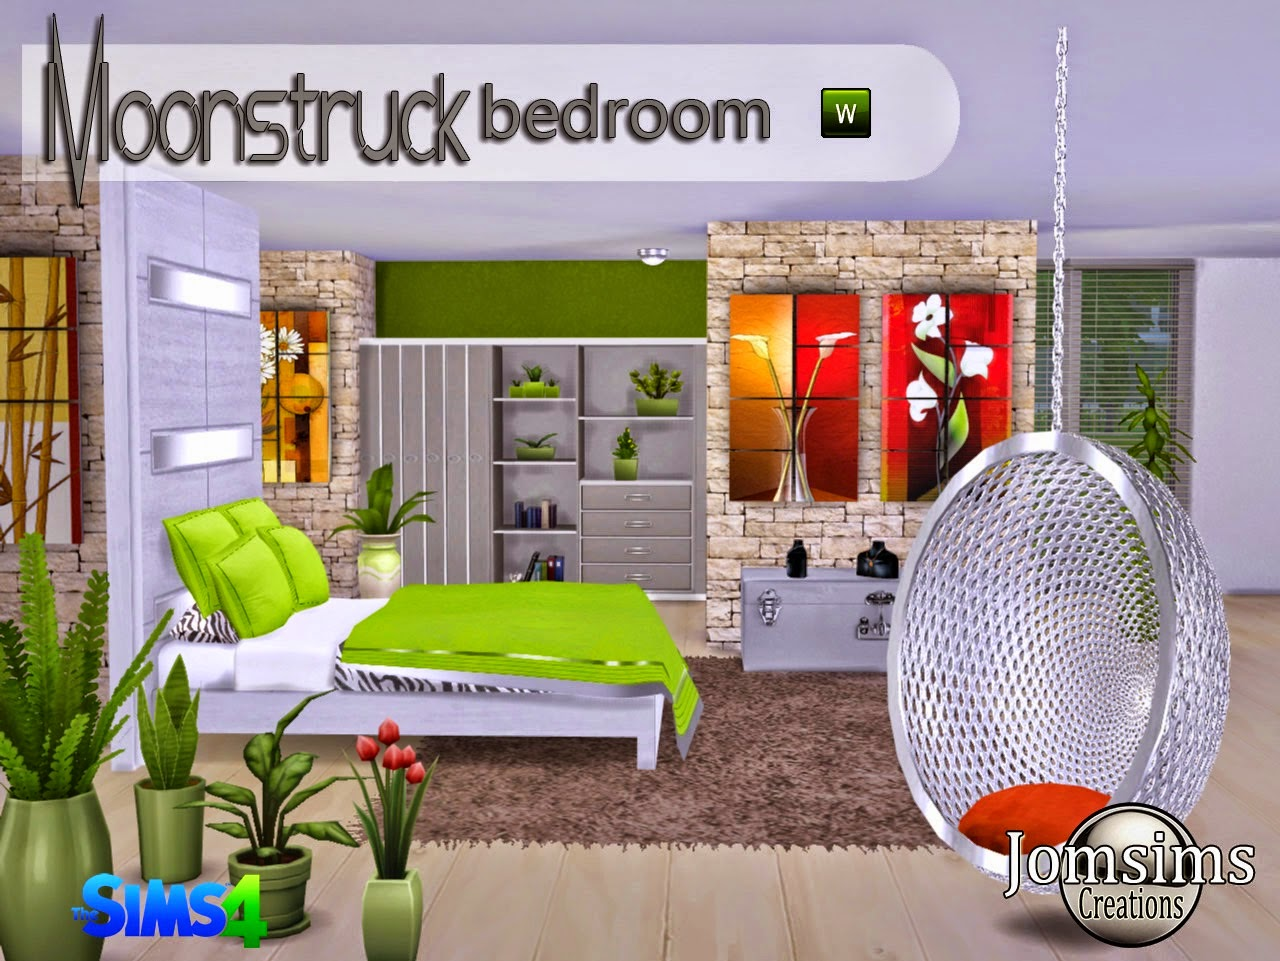 Moonstruck bedroom set by jomsims